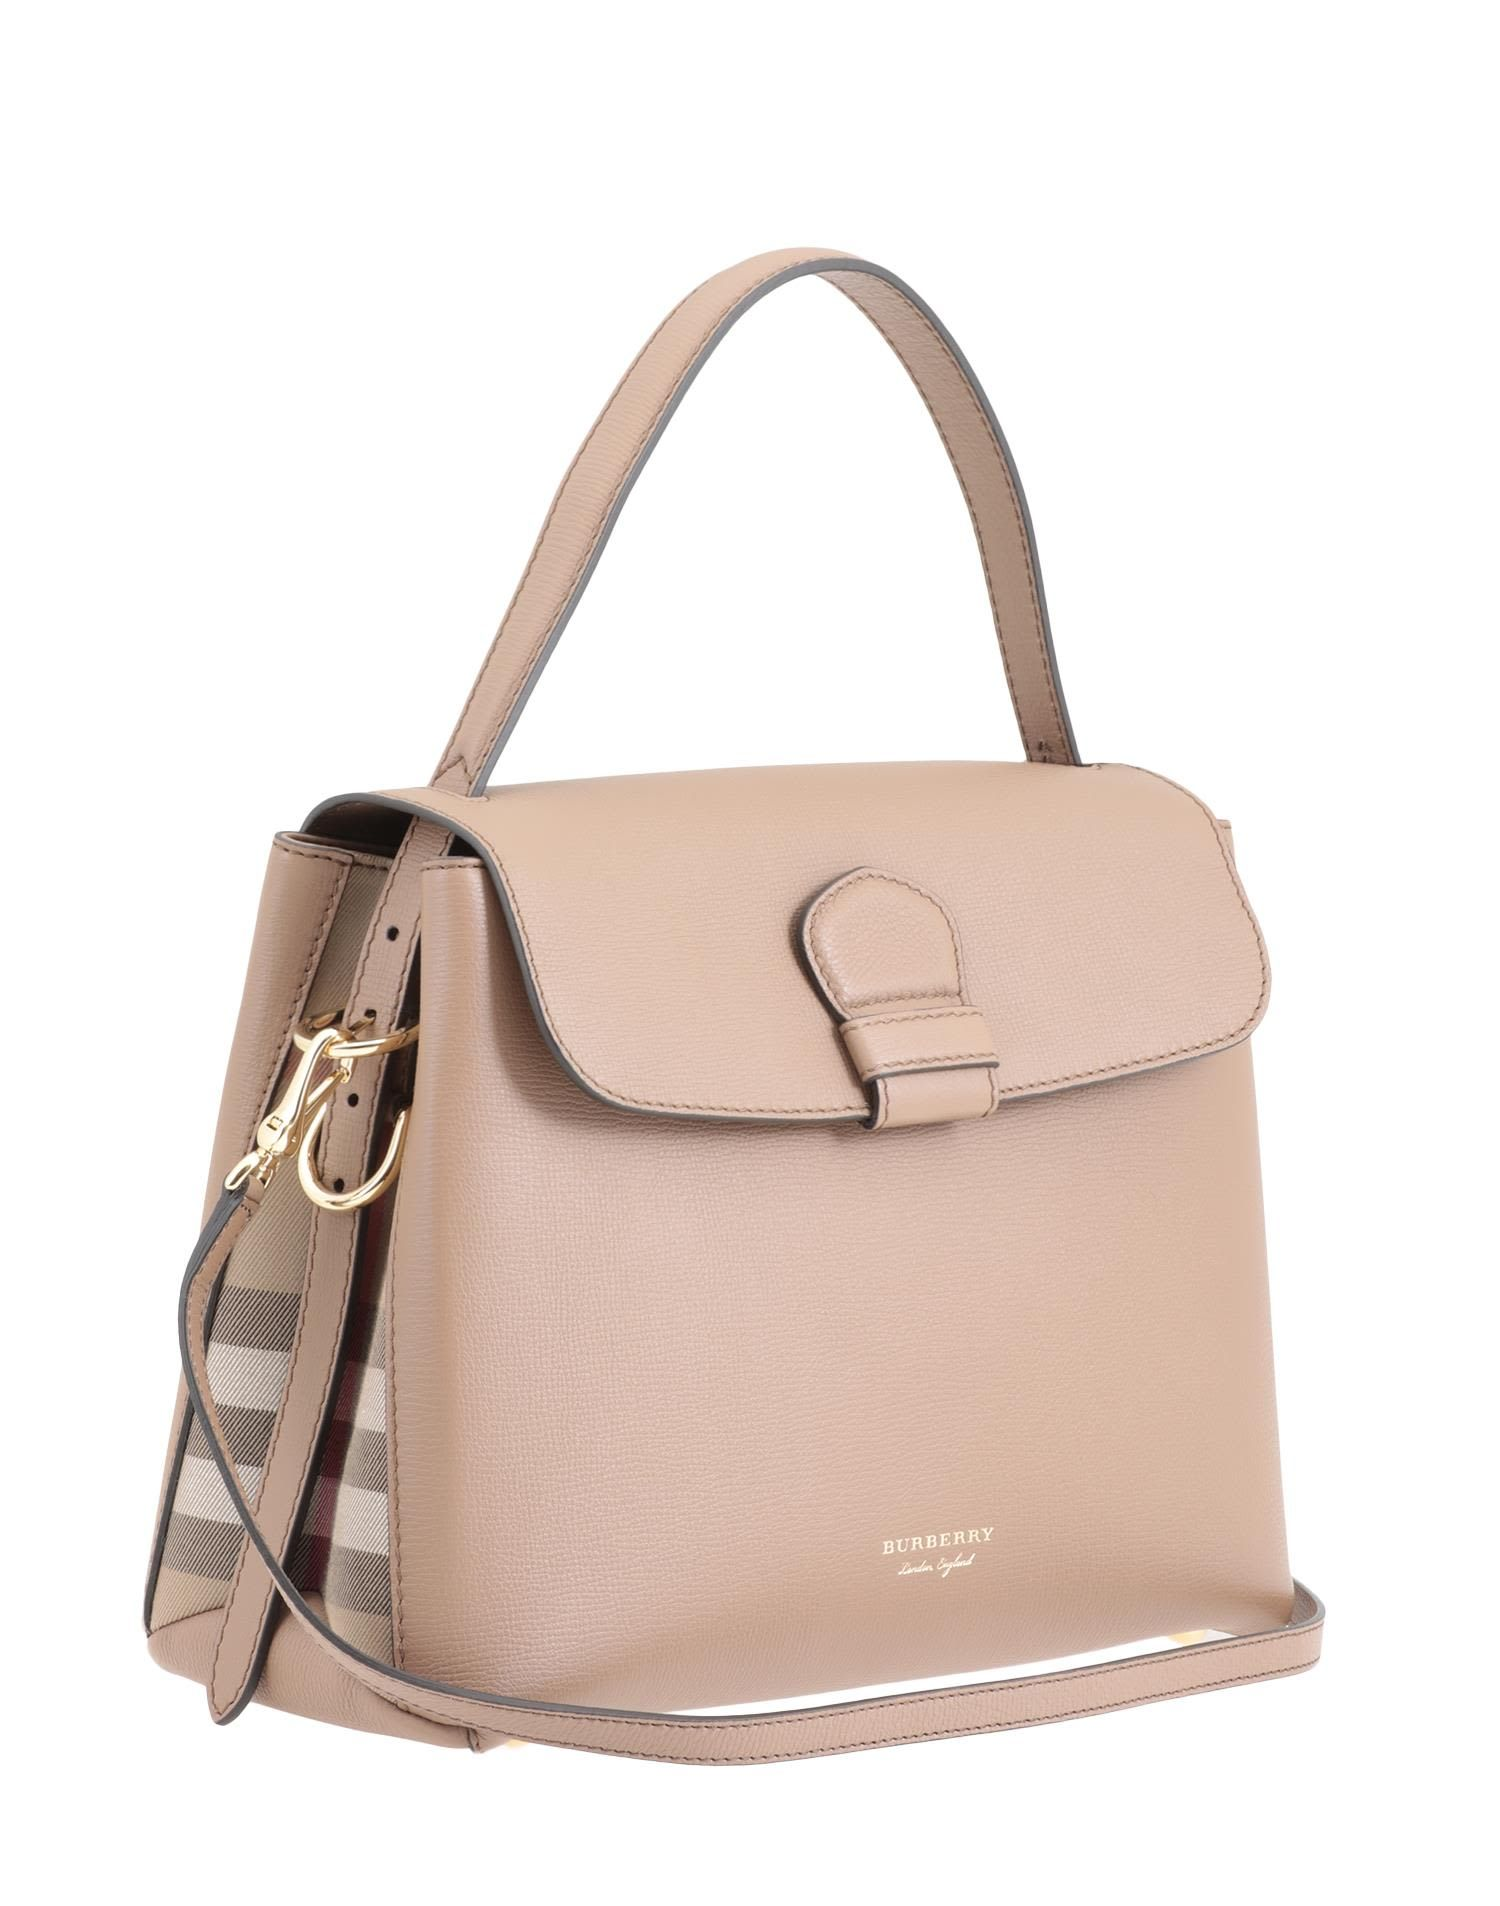 5fc0c16f5ce4 BURBERRY CAMBERLEY MEDIUM BAG.  burberry  bags  shoulder bags  hand bags   lining  leather  cotton